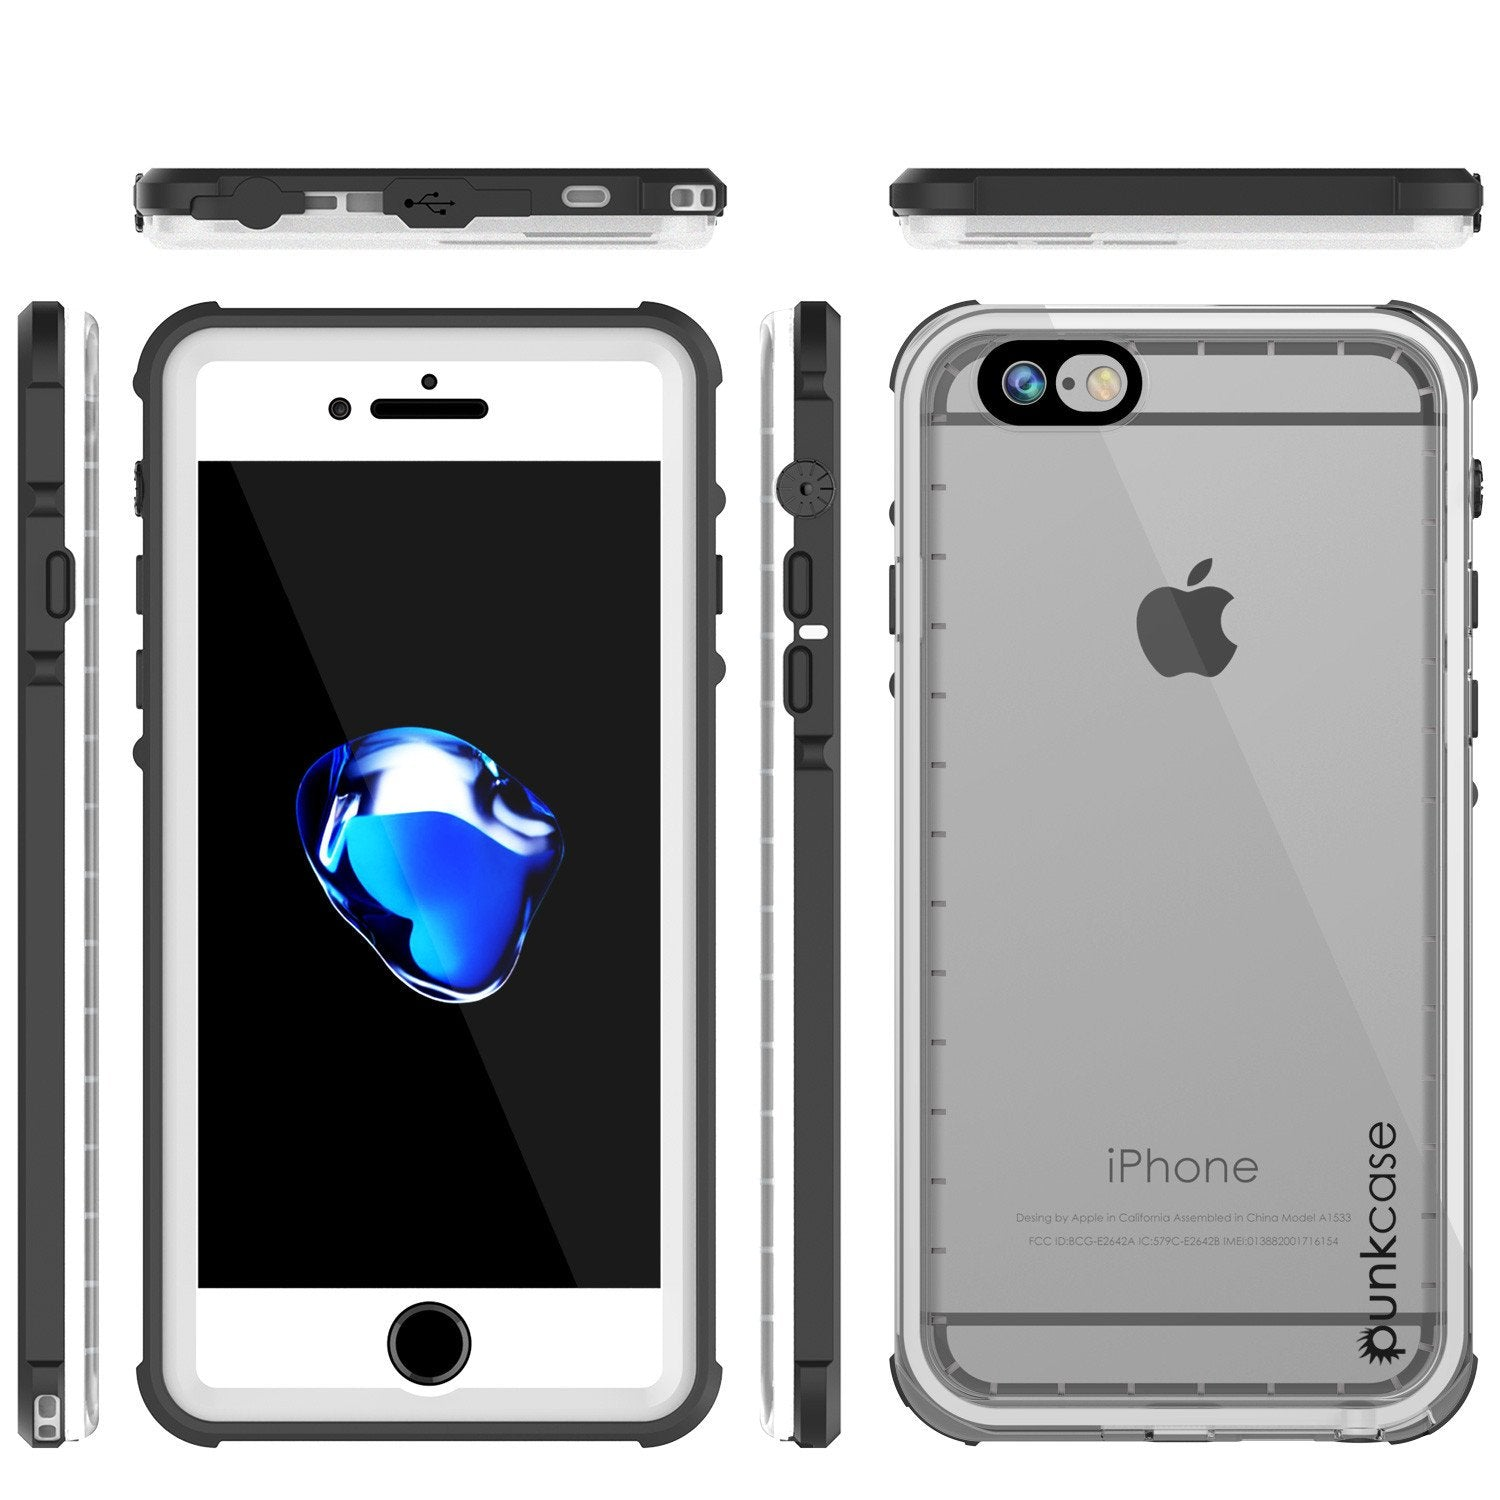 Apple iPhone 7 Waterproof Case, PUNKcase CRYSTAL White W/ Attached Screen Protector  | Warranty